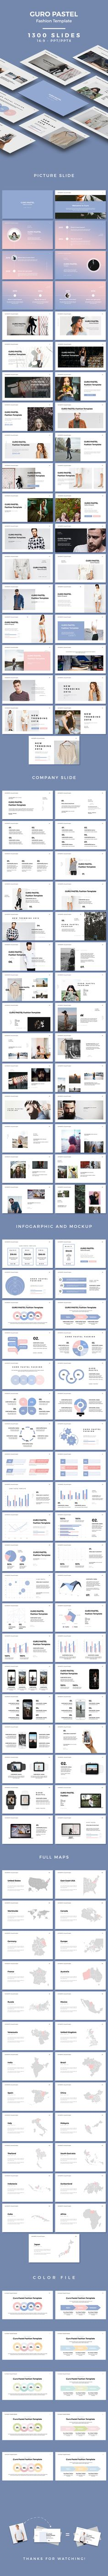 GURO Pastel - Fashion Template (PowerPoint Templates)